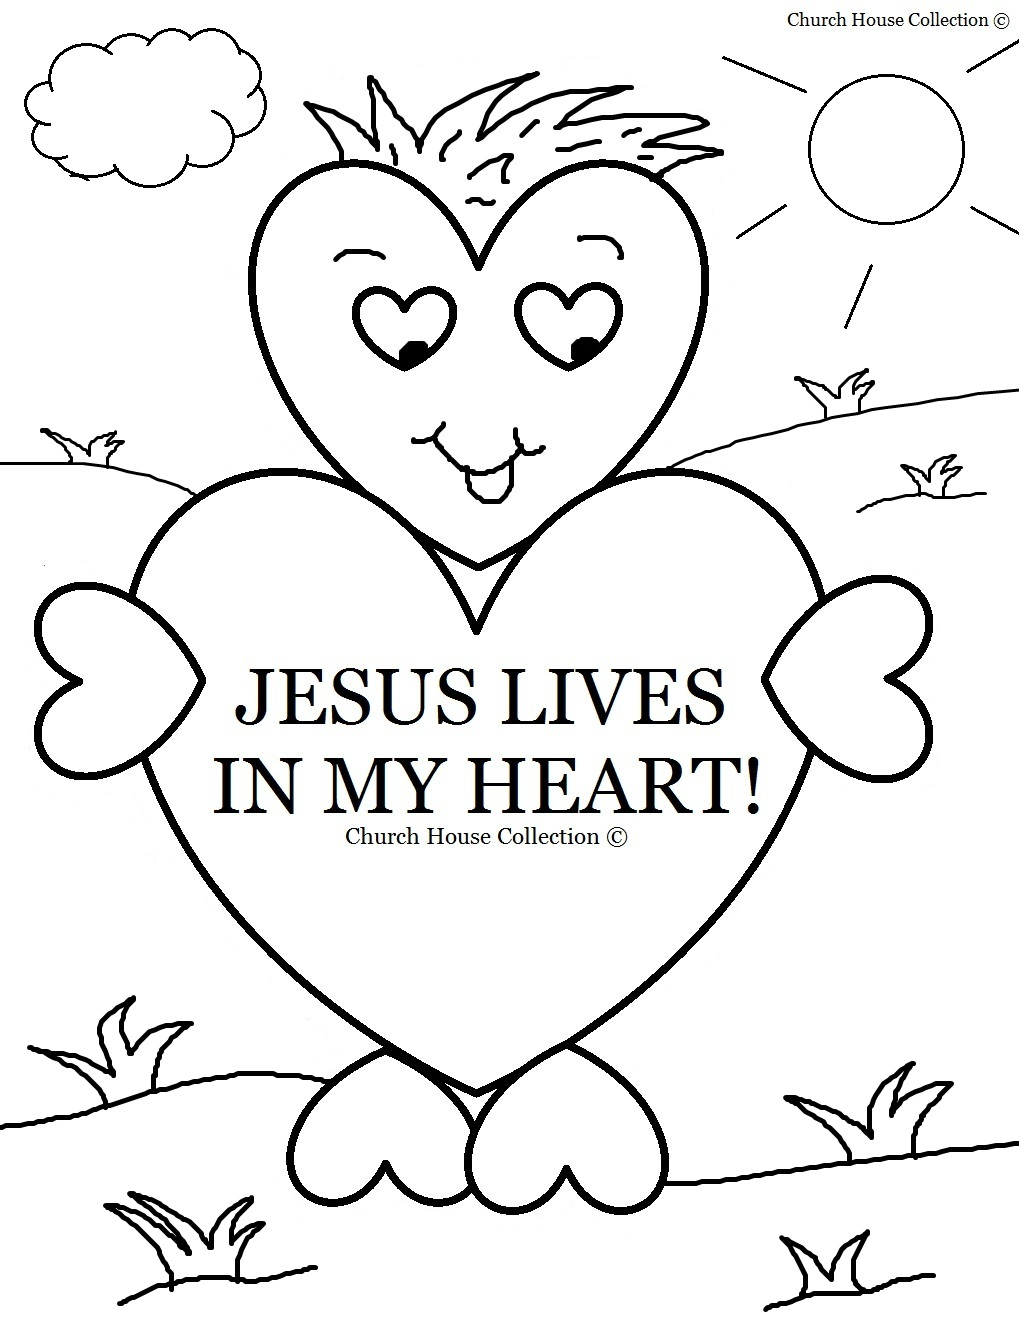 Church house collection blog january 2013 for Coloring pages for sunday school preschool